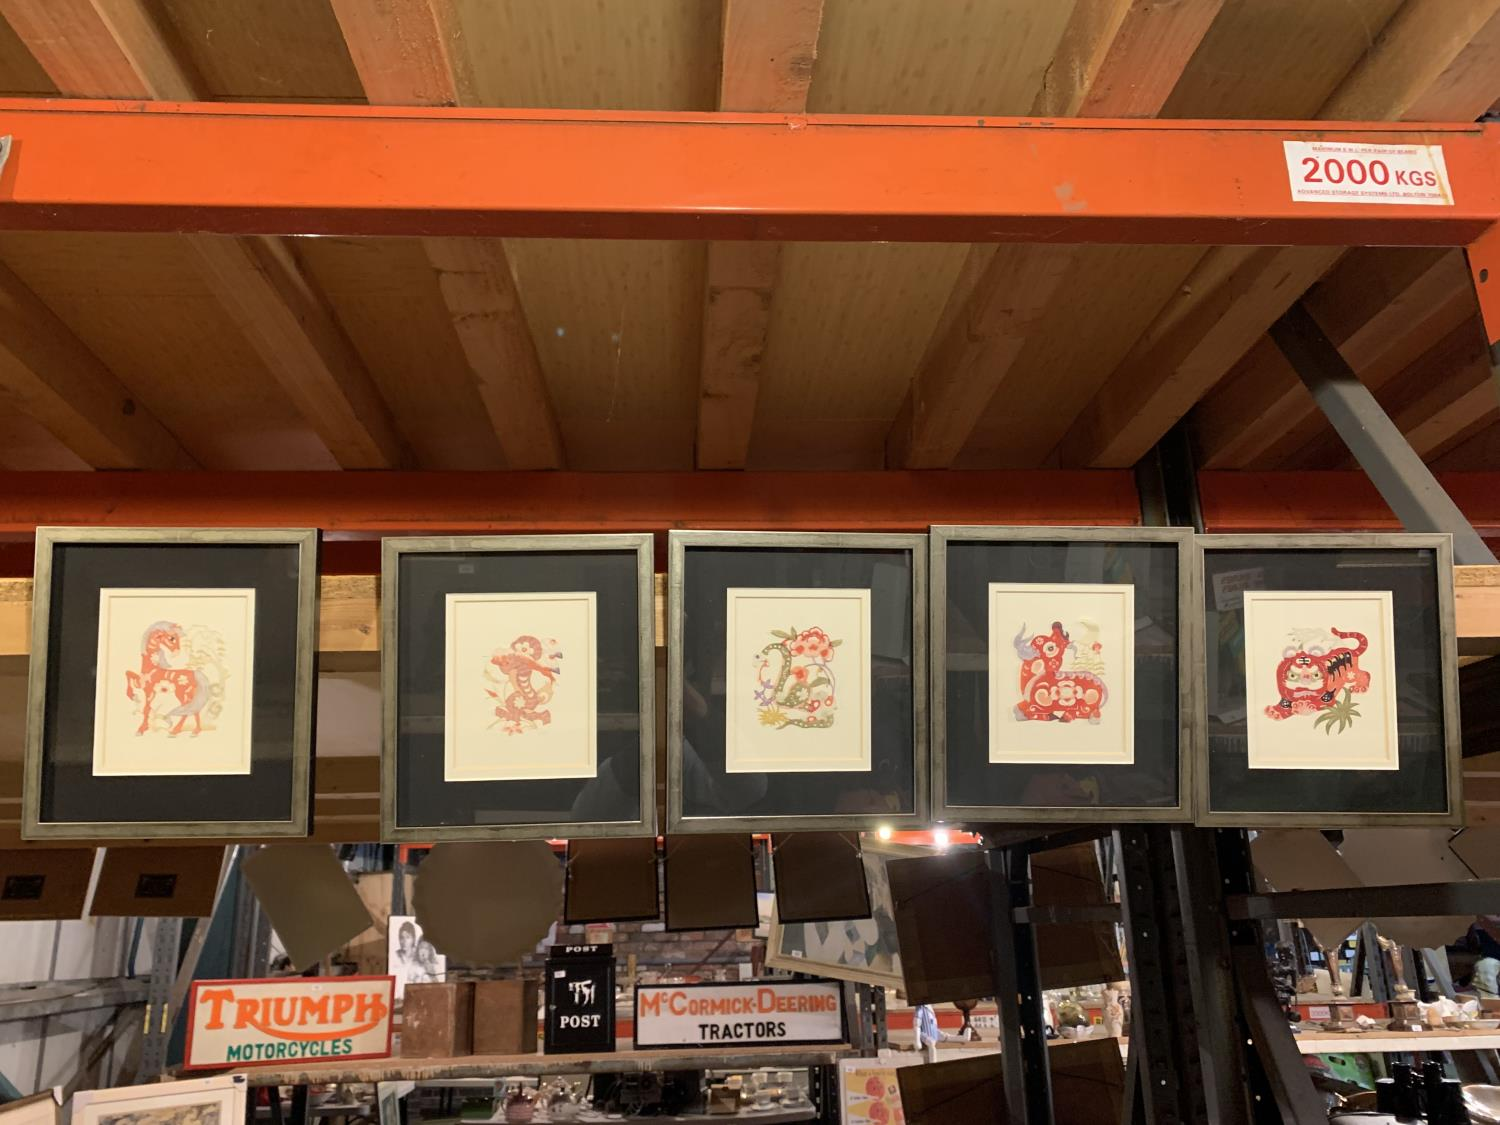 FIVE COLLAGE ORIENTAL STYLE INSPIRED FRAMED PIECES OF ART - Image 2 of 12